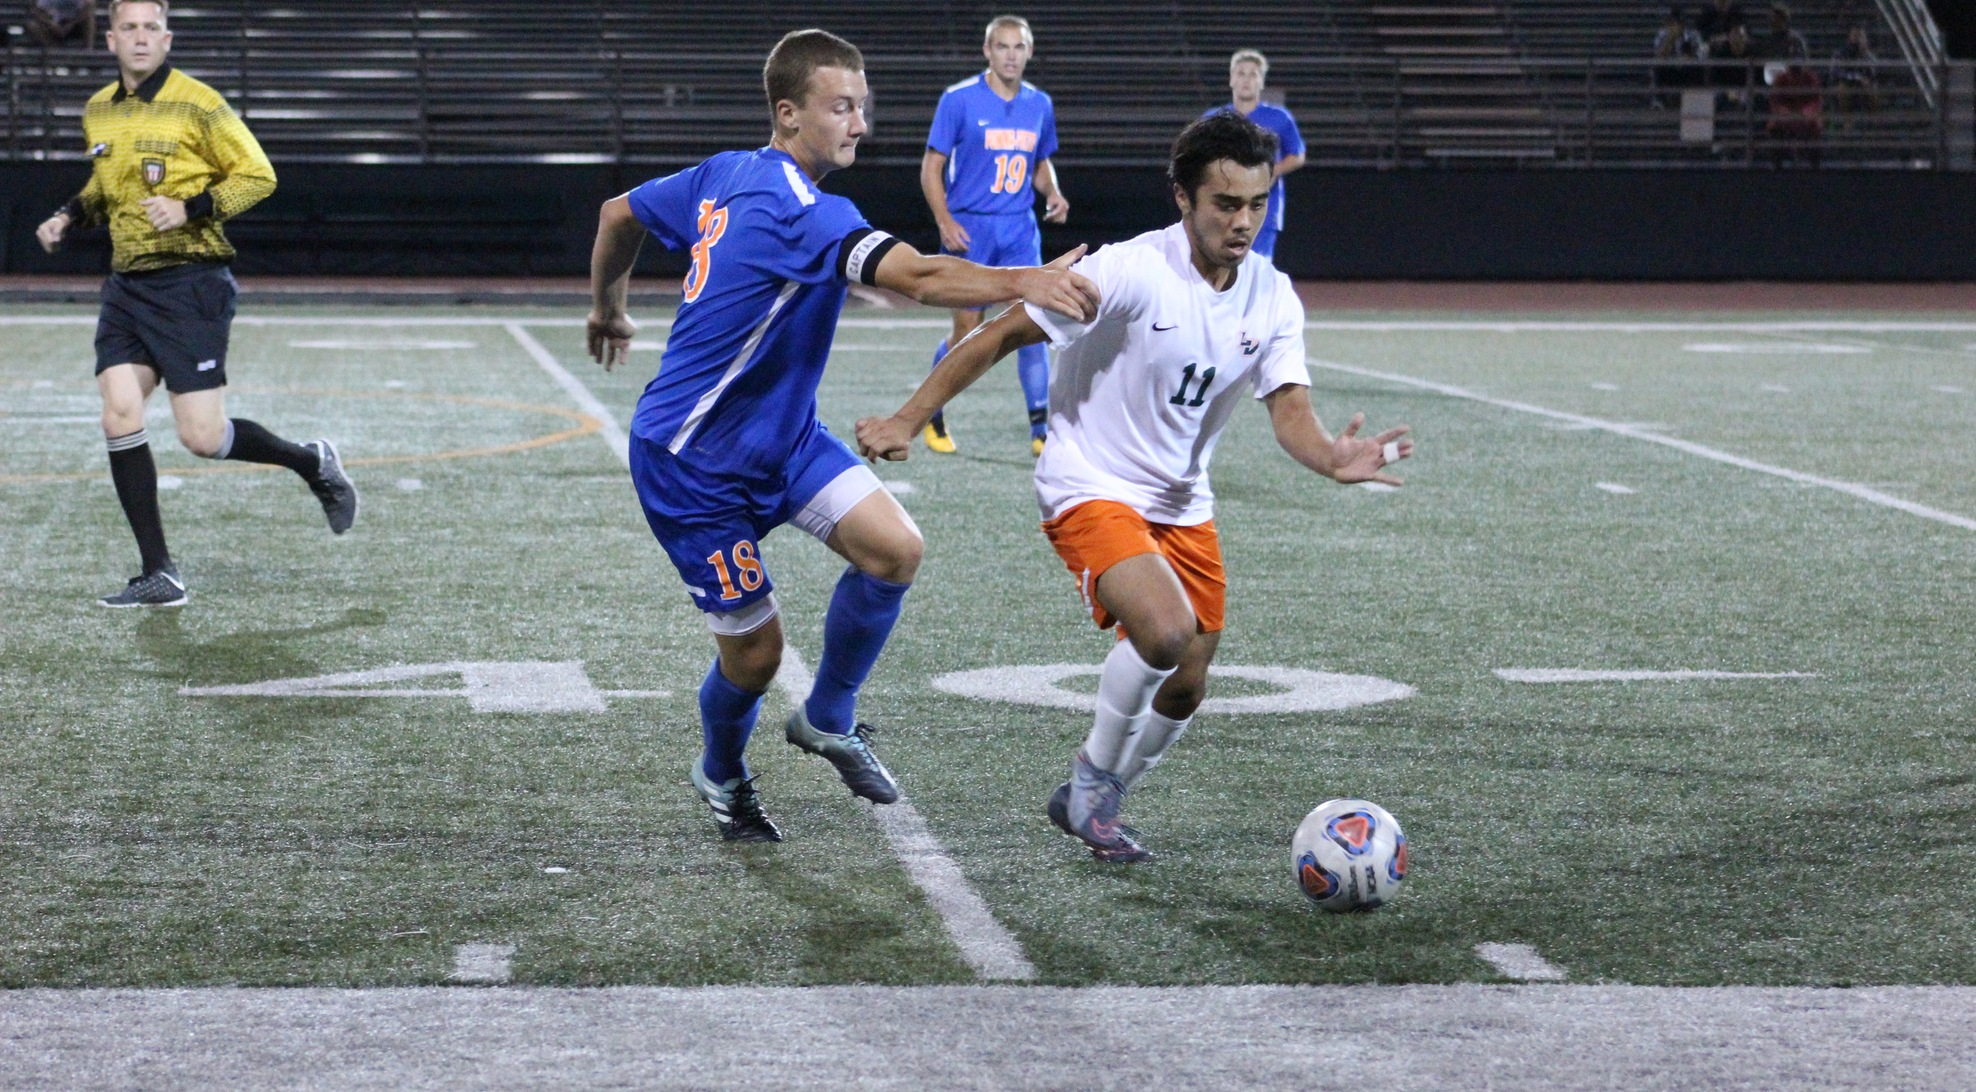 Men's Soccer plays No. 19 Redlands to tie